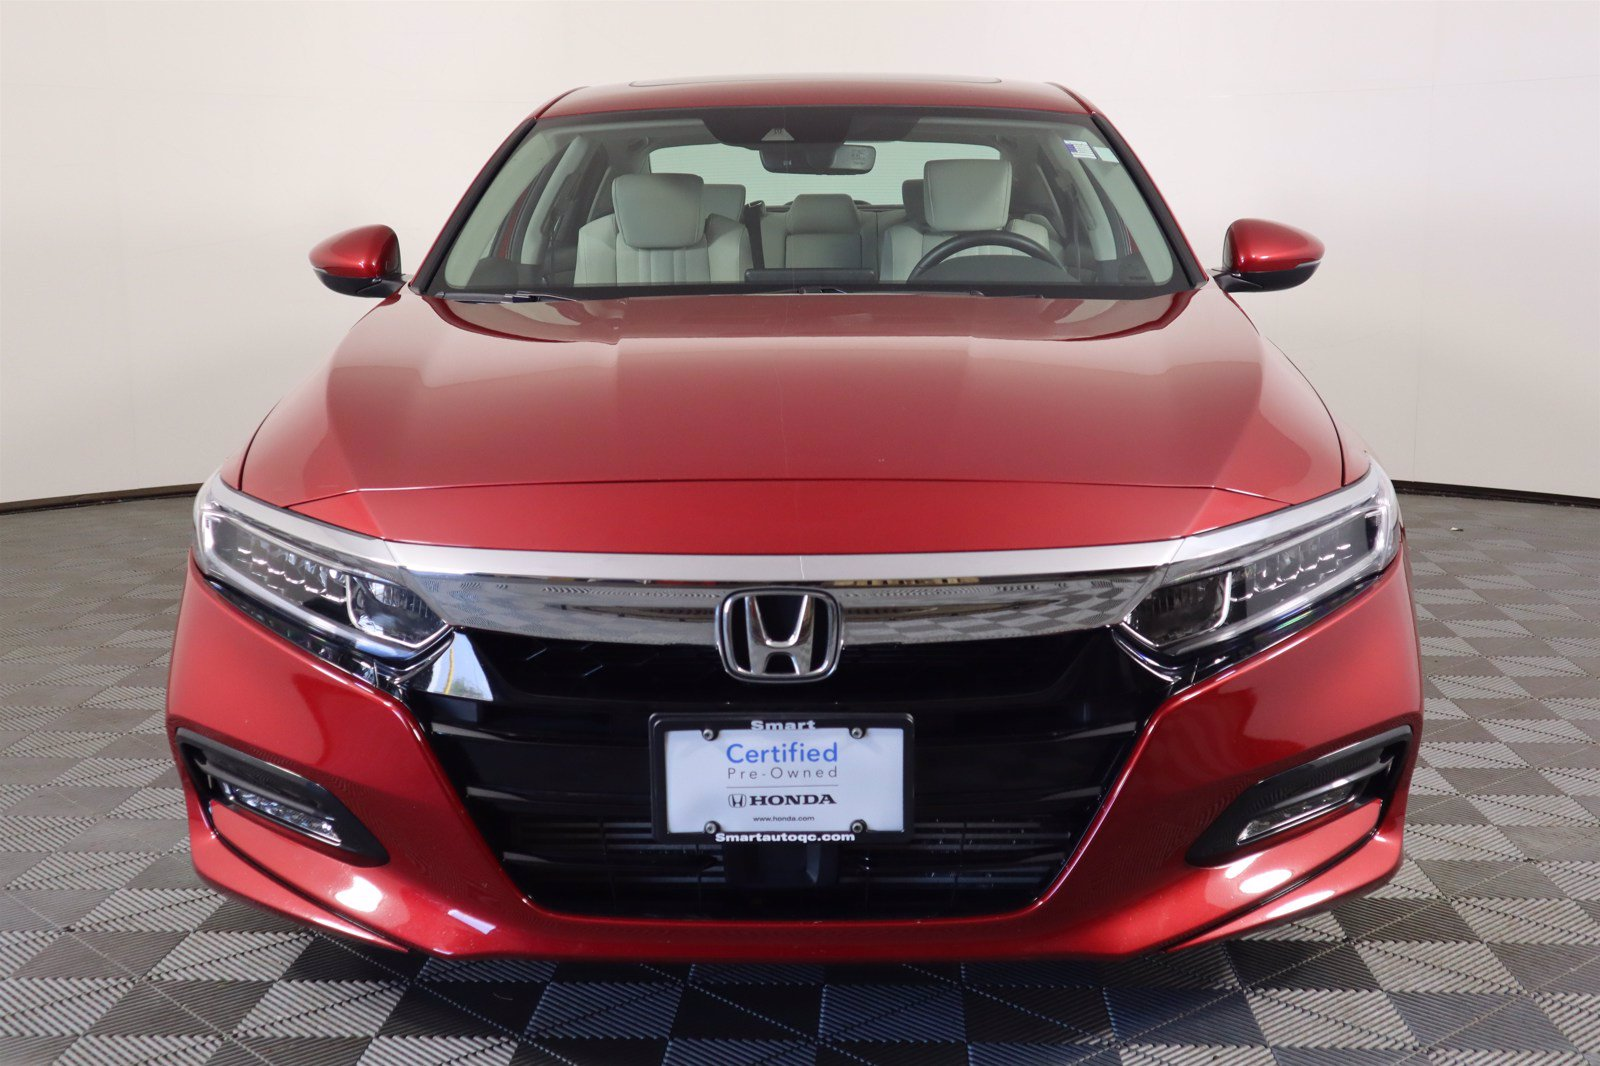 Certified Pre-Owned 2018 Honda Accord Sedan EX-L Navi 2.0T